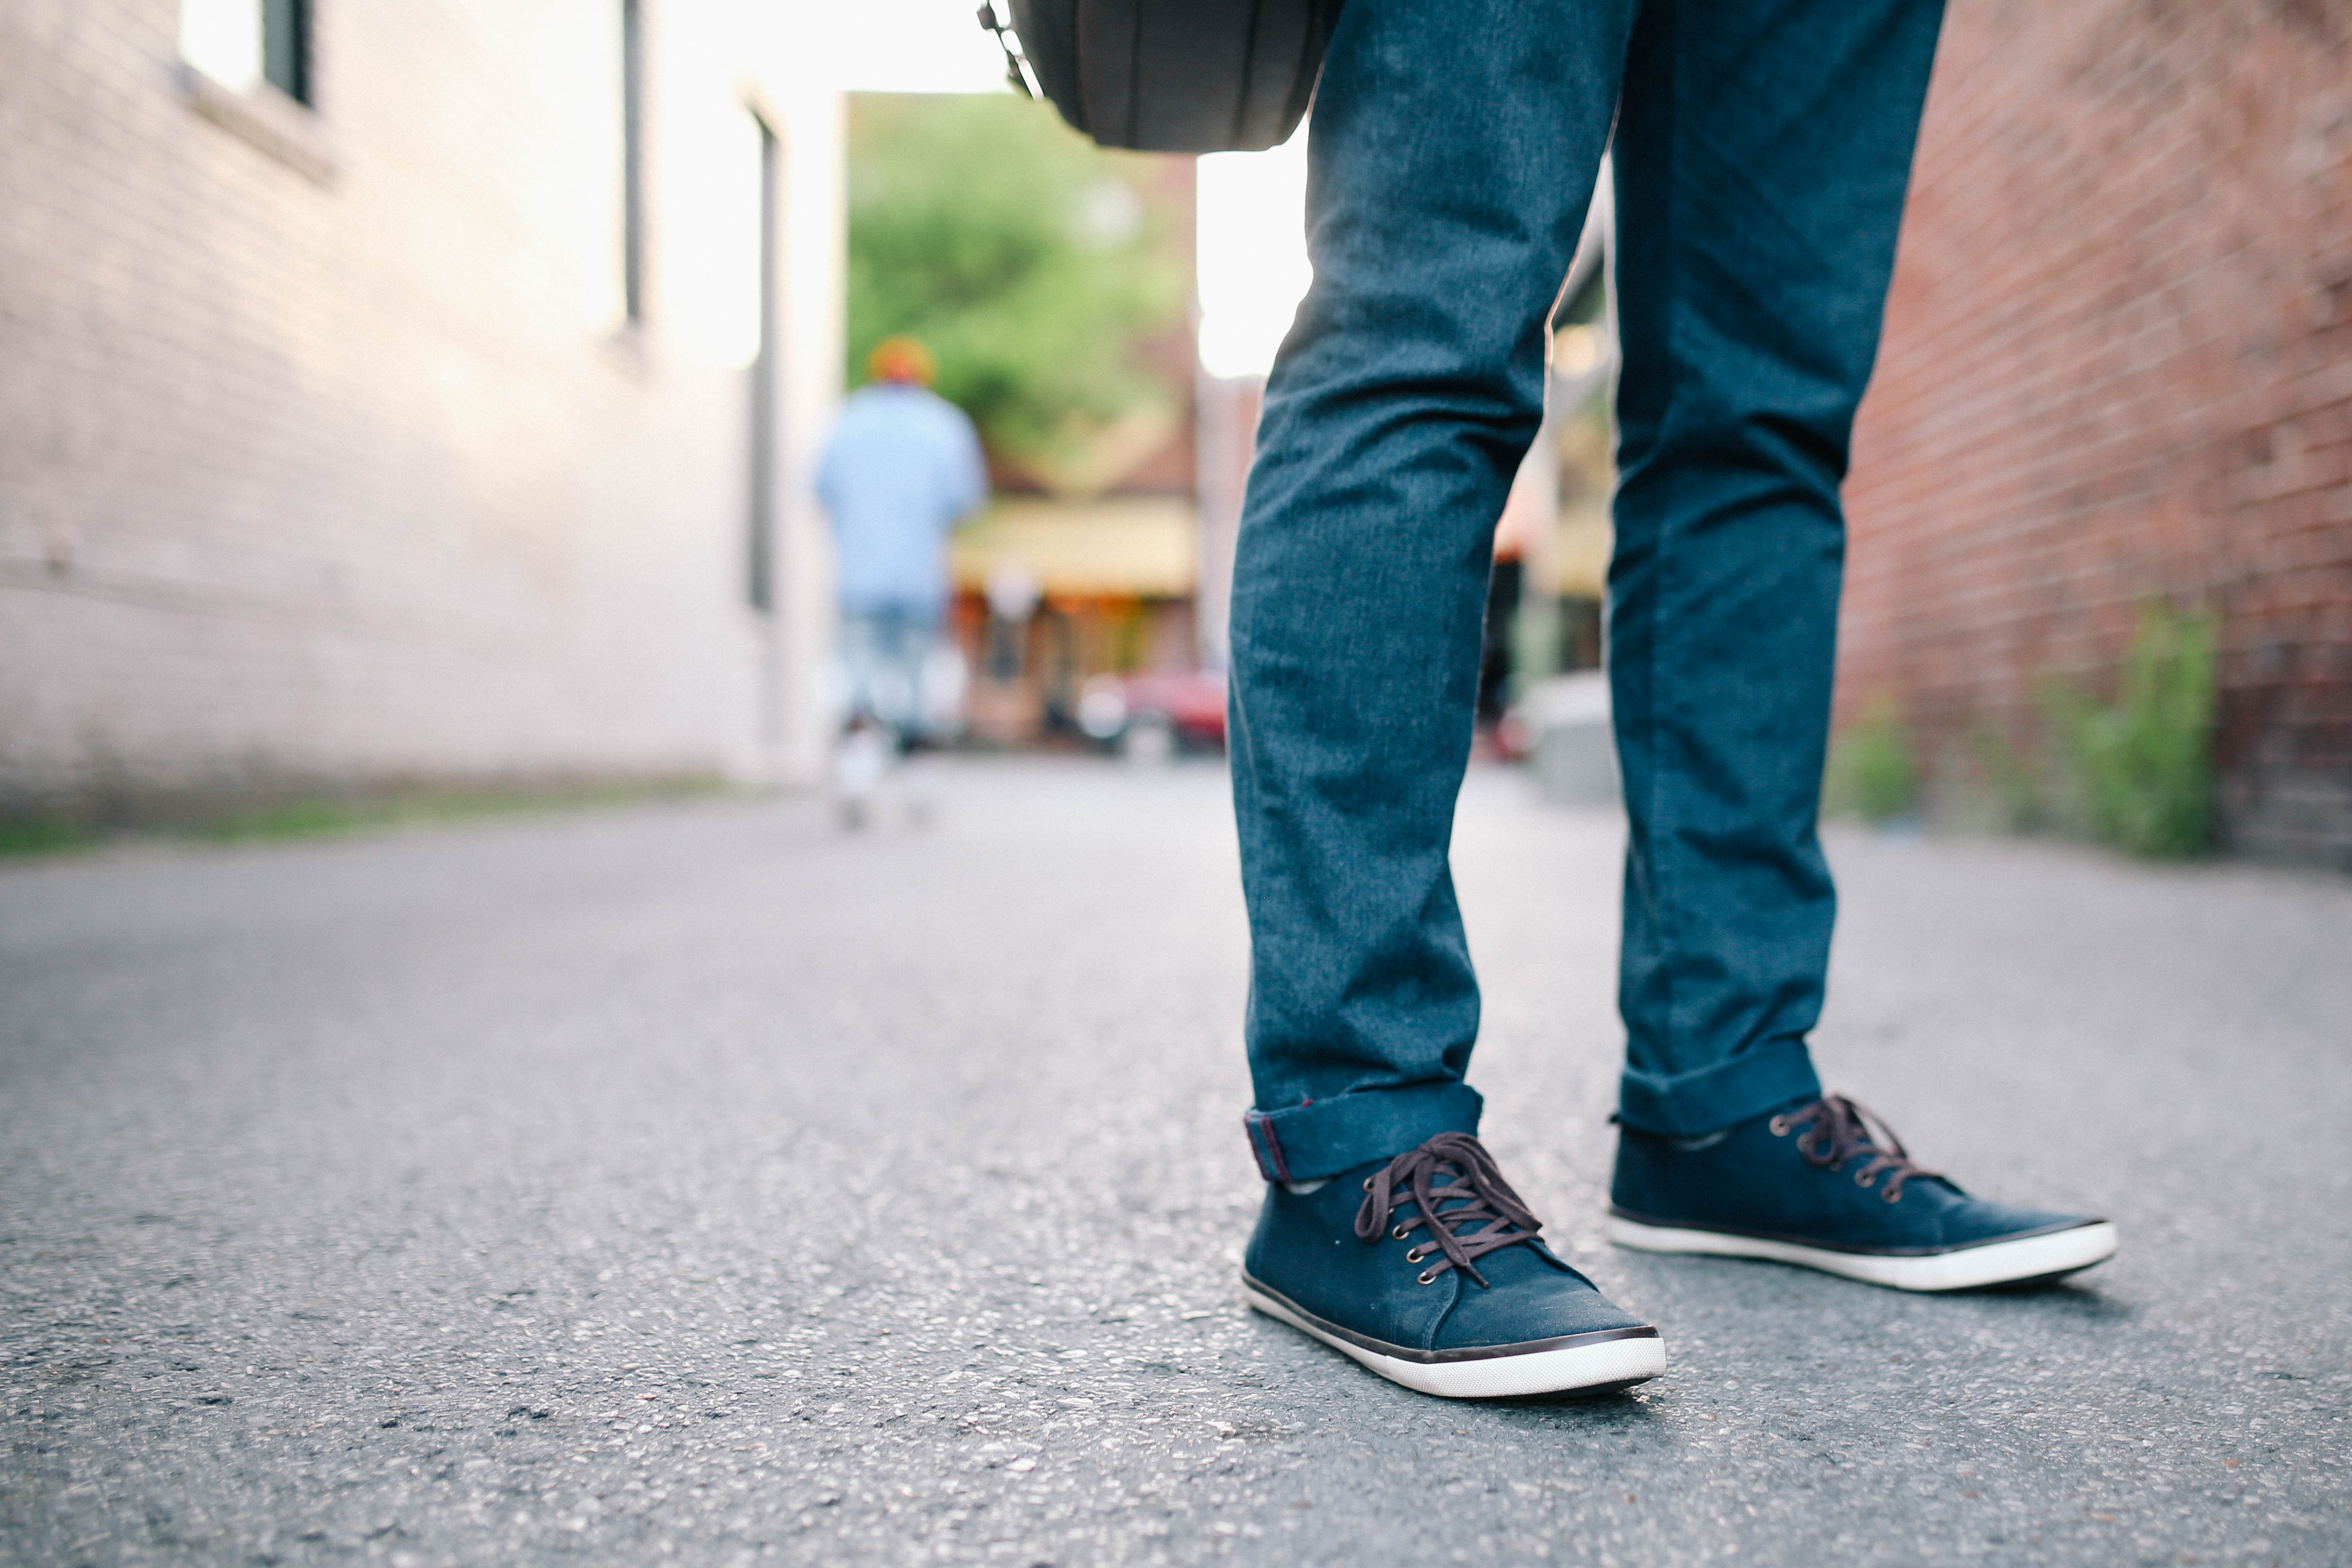 Why You Shouldn't Feel Guilty Enjoying an Afternoon Stroll